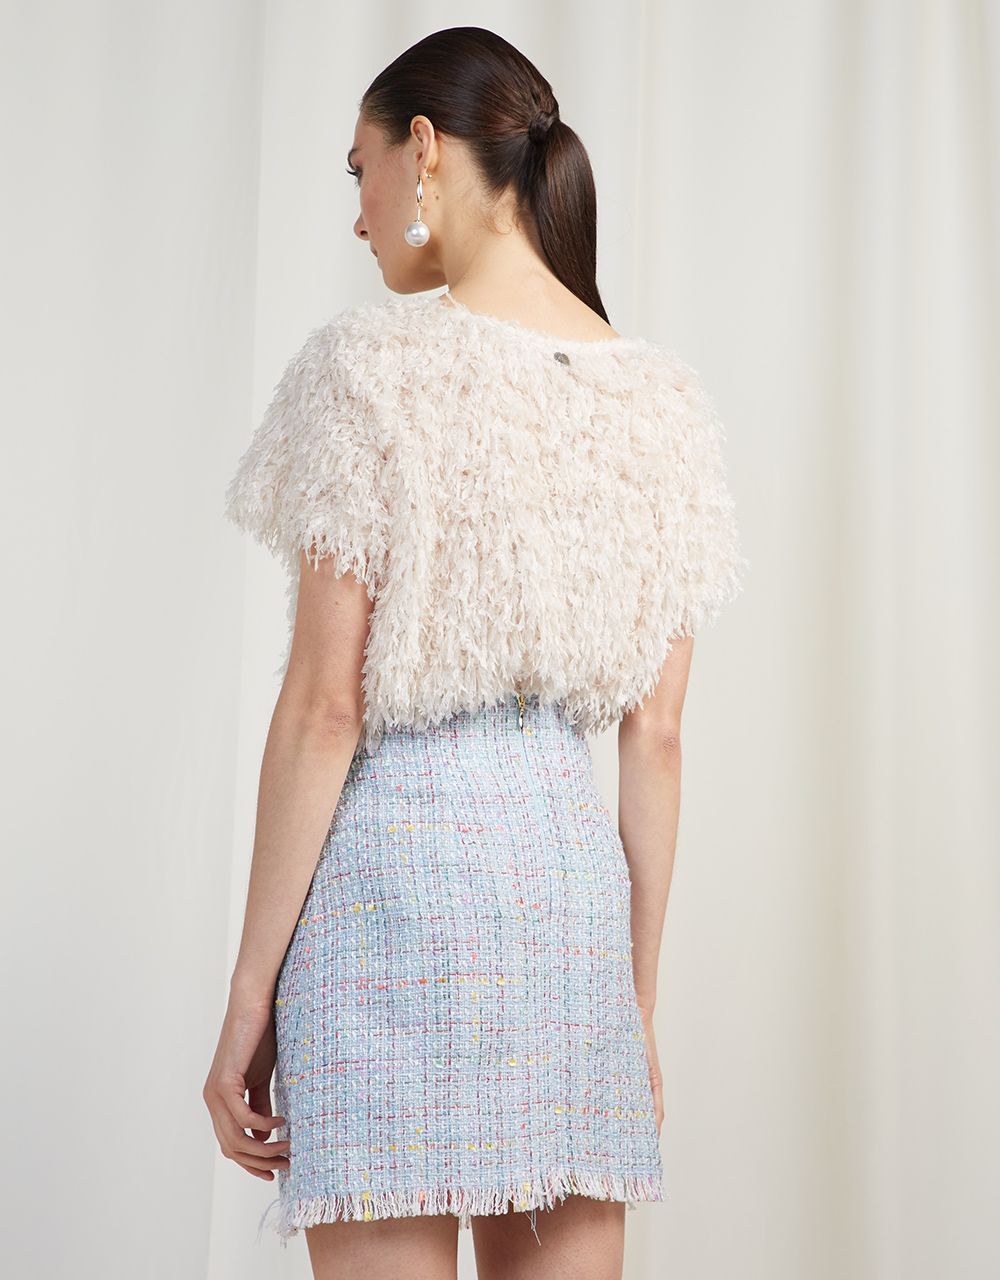 TOP WITH FEATHERS